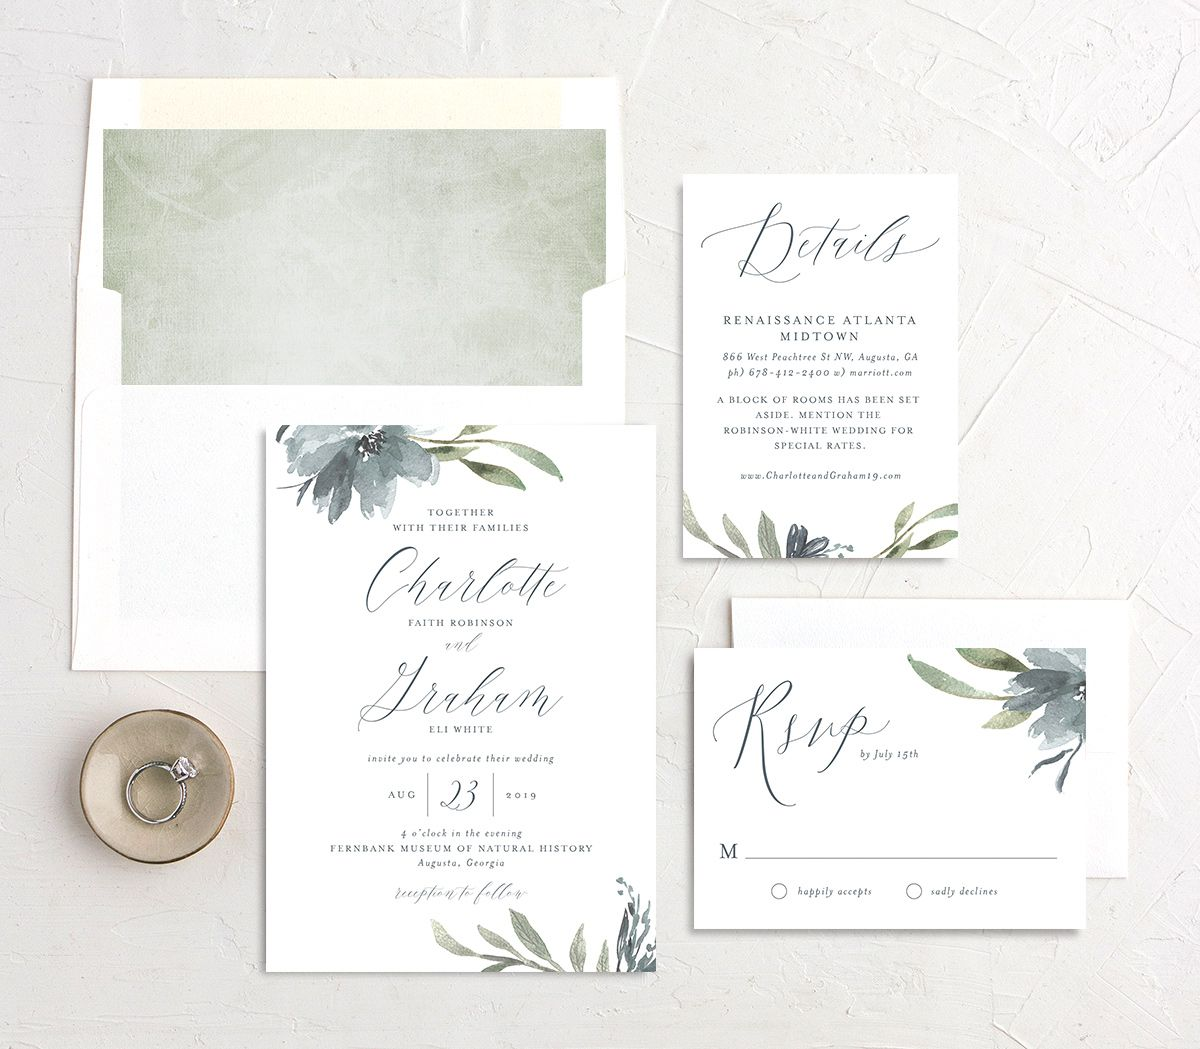 muted floral wedding invitation stationery suite in dusty blue